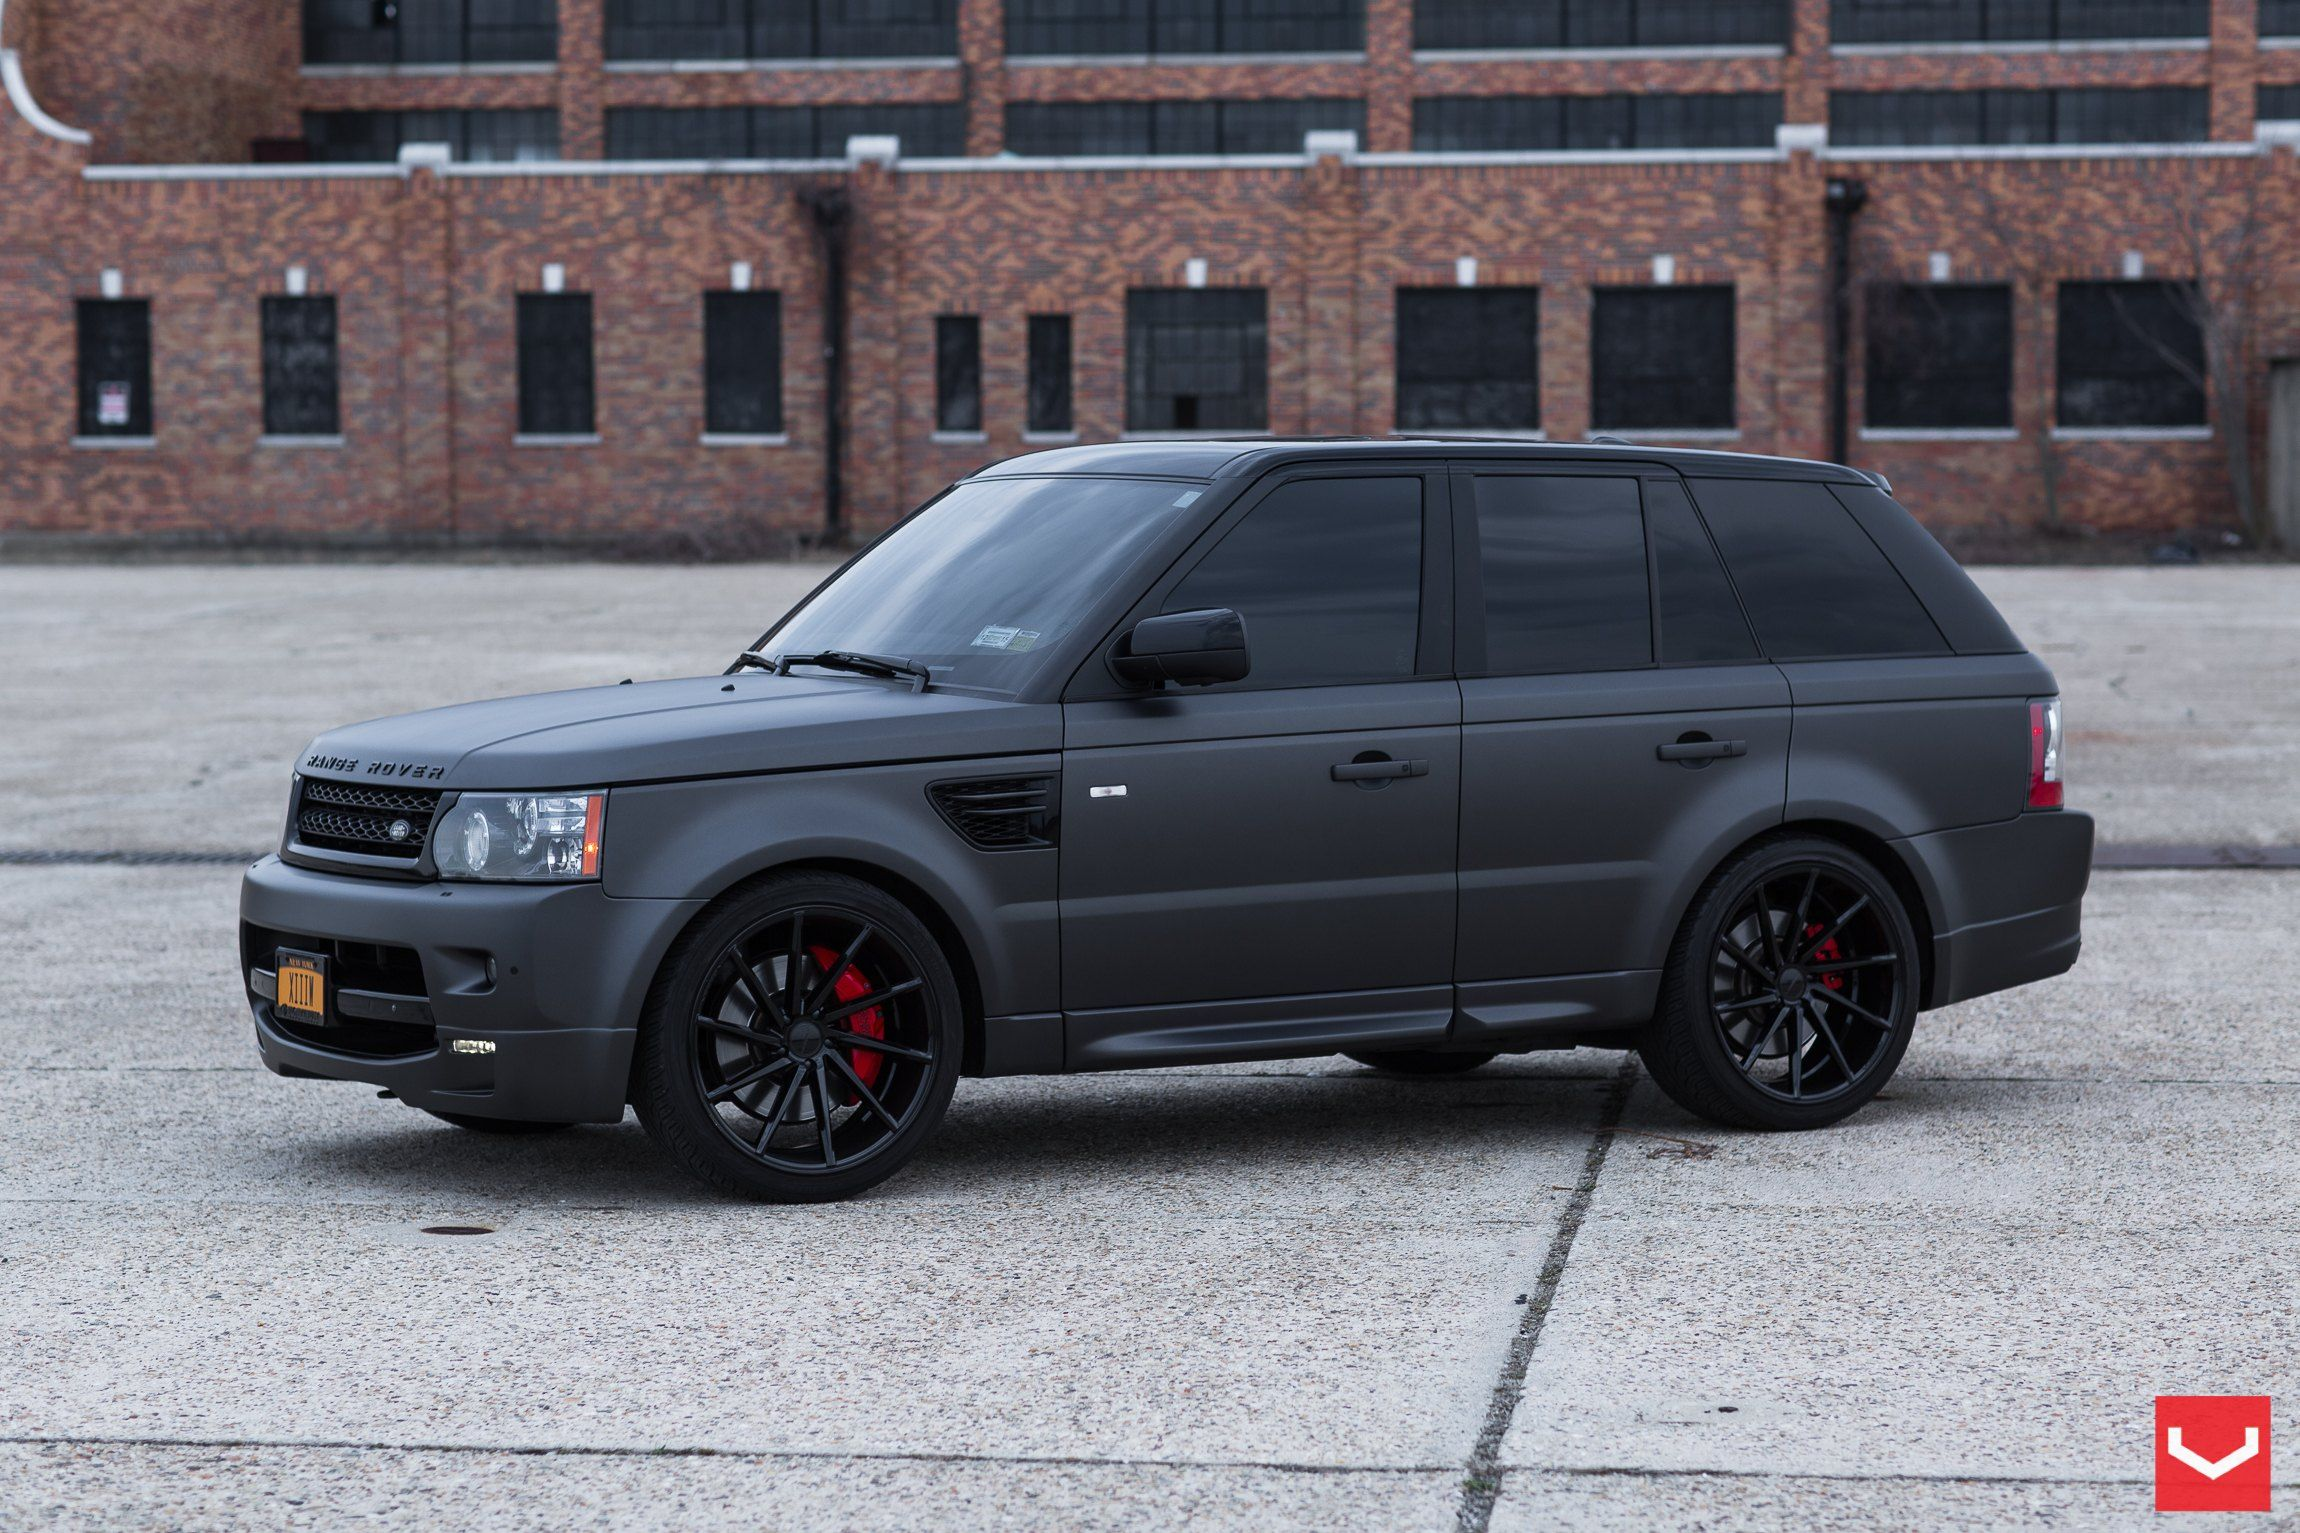 Black on Black Matte Land Rover Range Rover Sport with Custom Rims